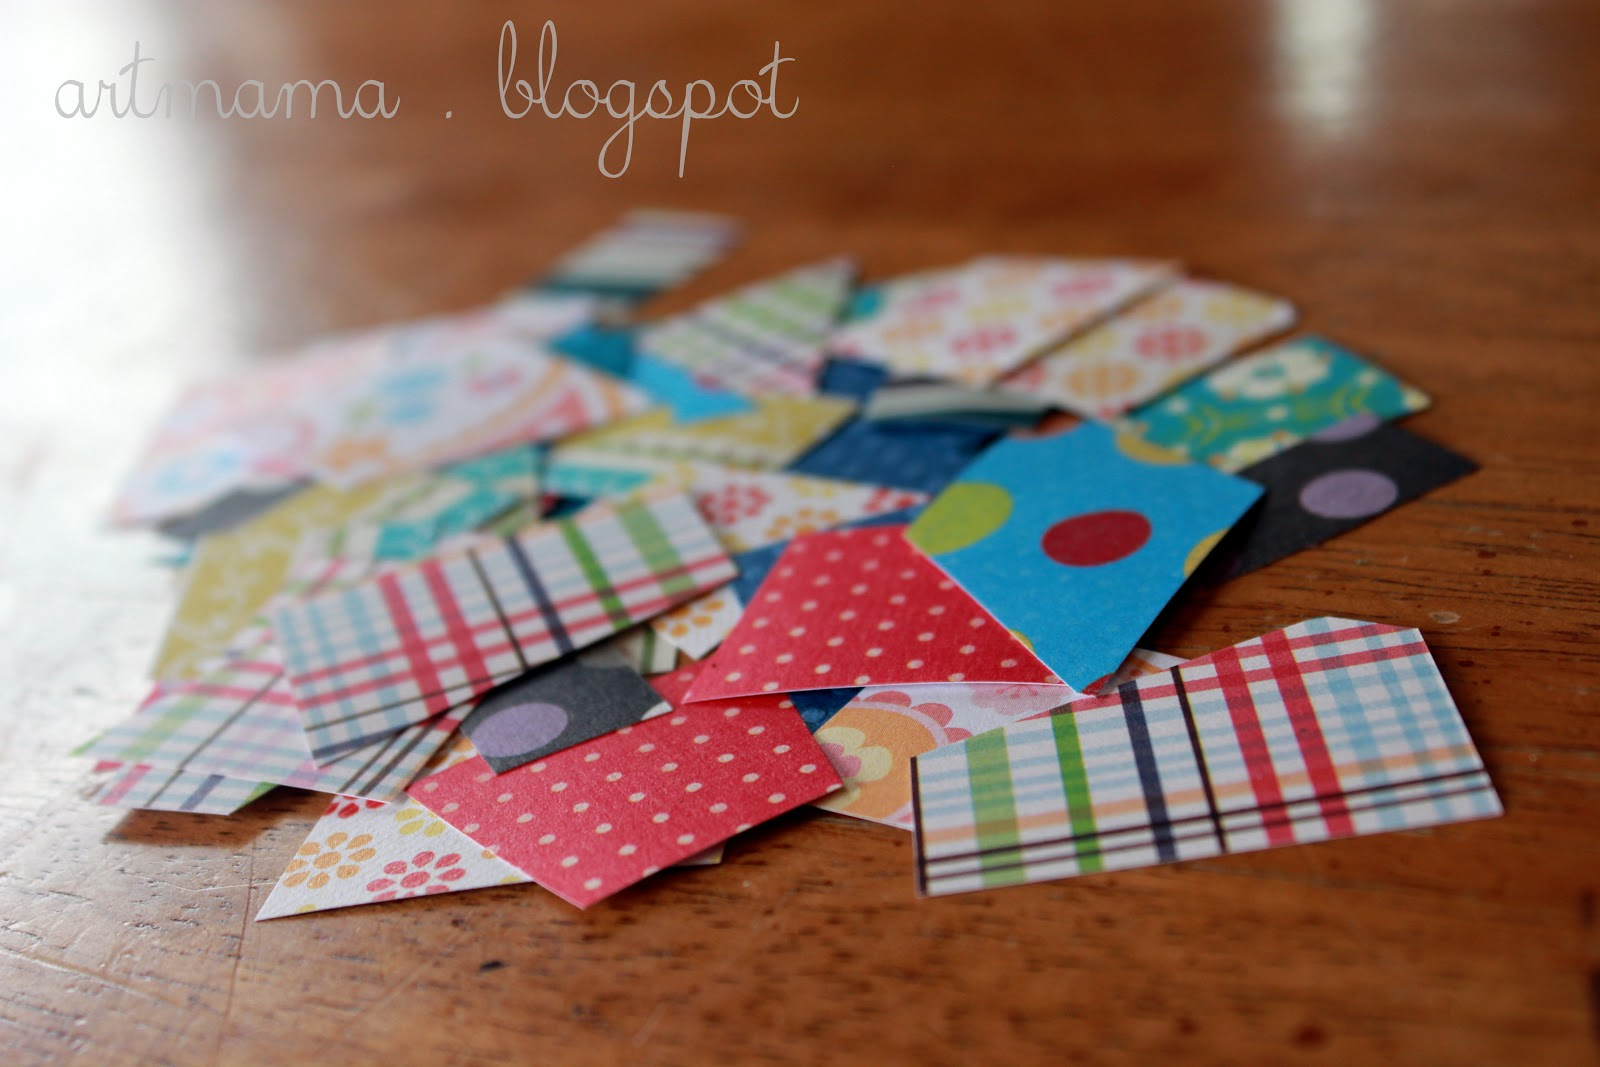 Scrapbook paper craft ideas - We Mostly Used Scrapbook Paper Scraps Leftover From Other Projects But Wrapping Paper Plain Construction Paper Or Even Real Fabric Scraps Are Other